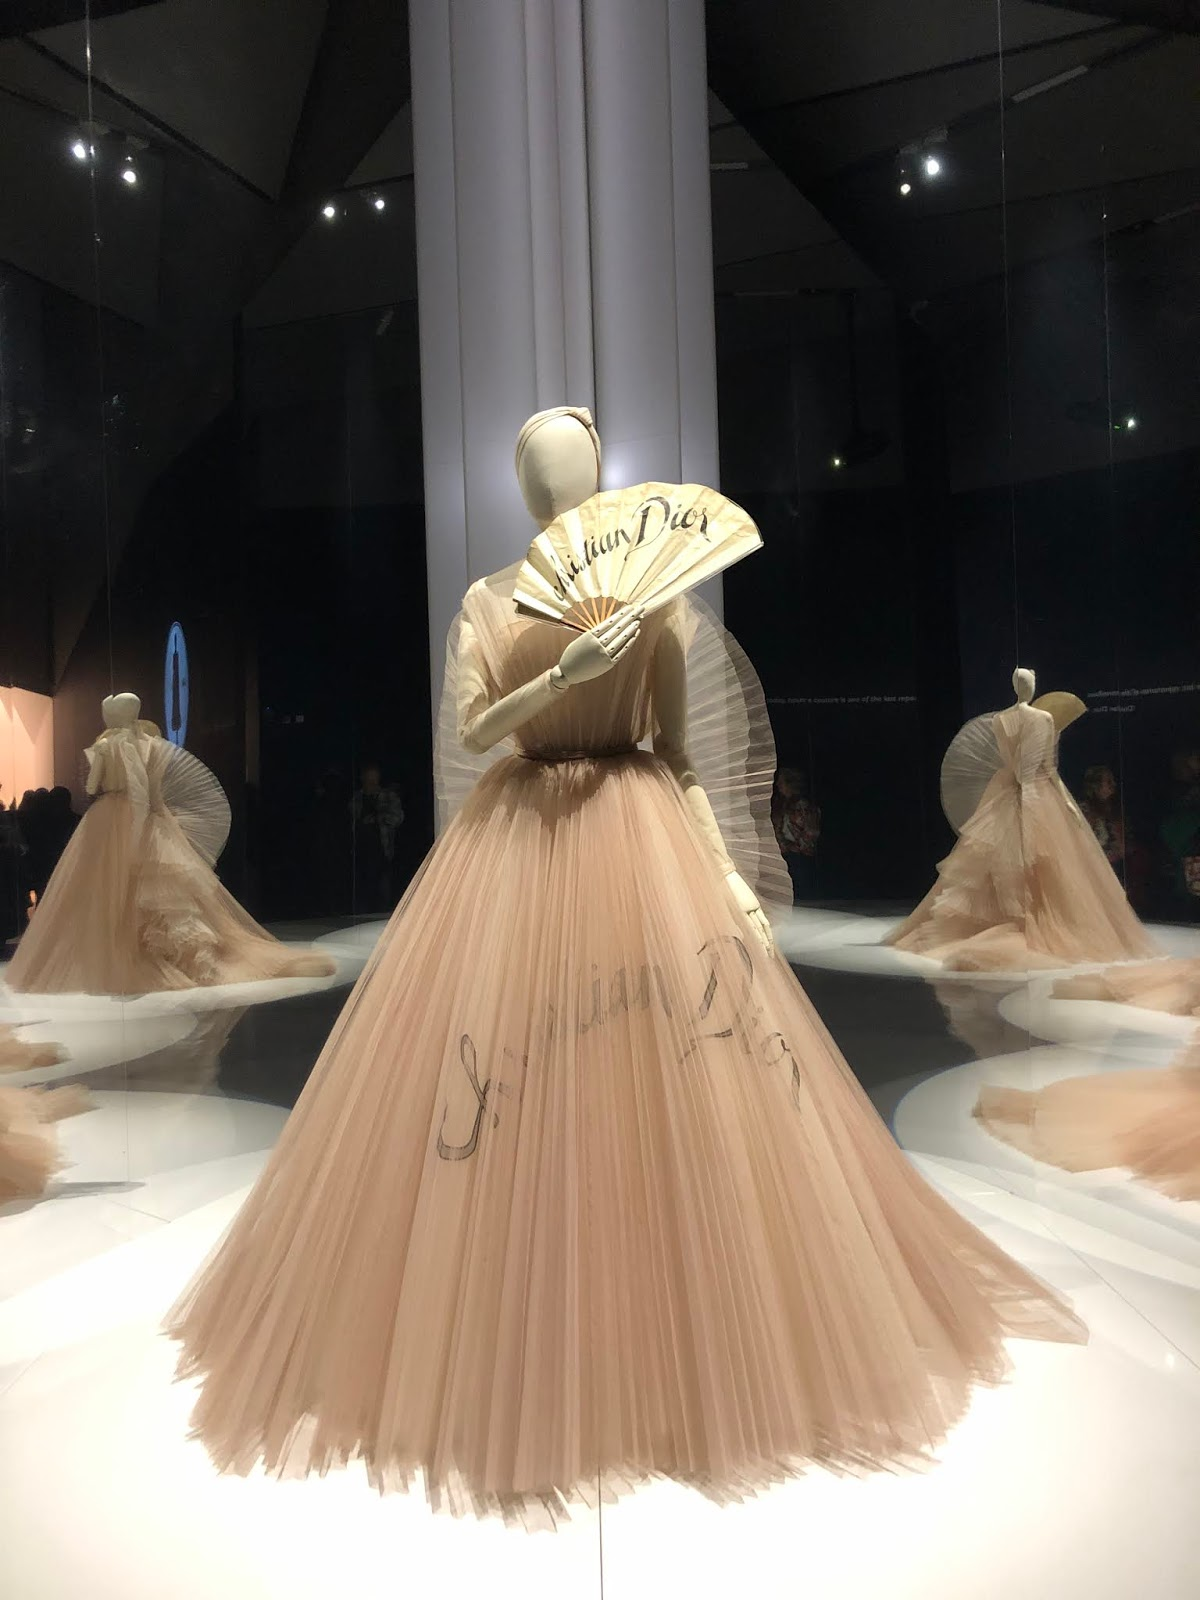 christian dior exhibition v and a fan dress